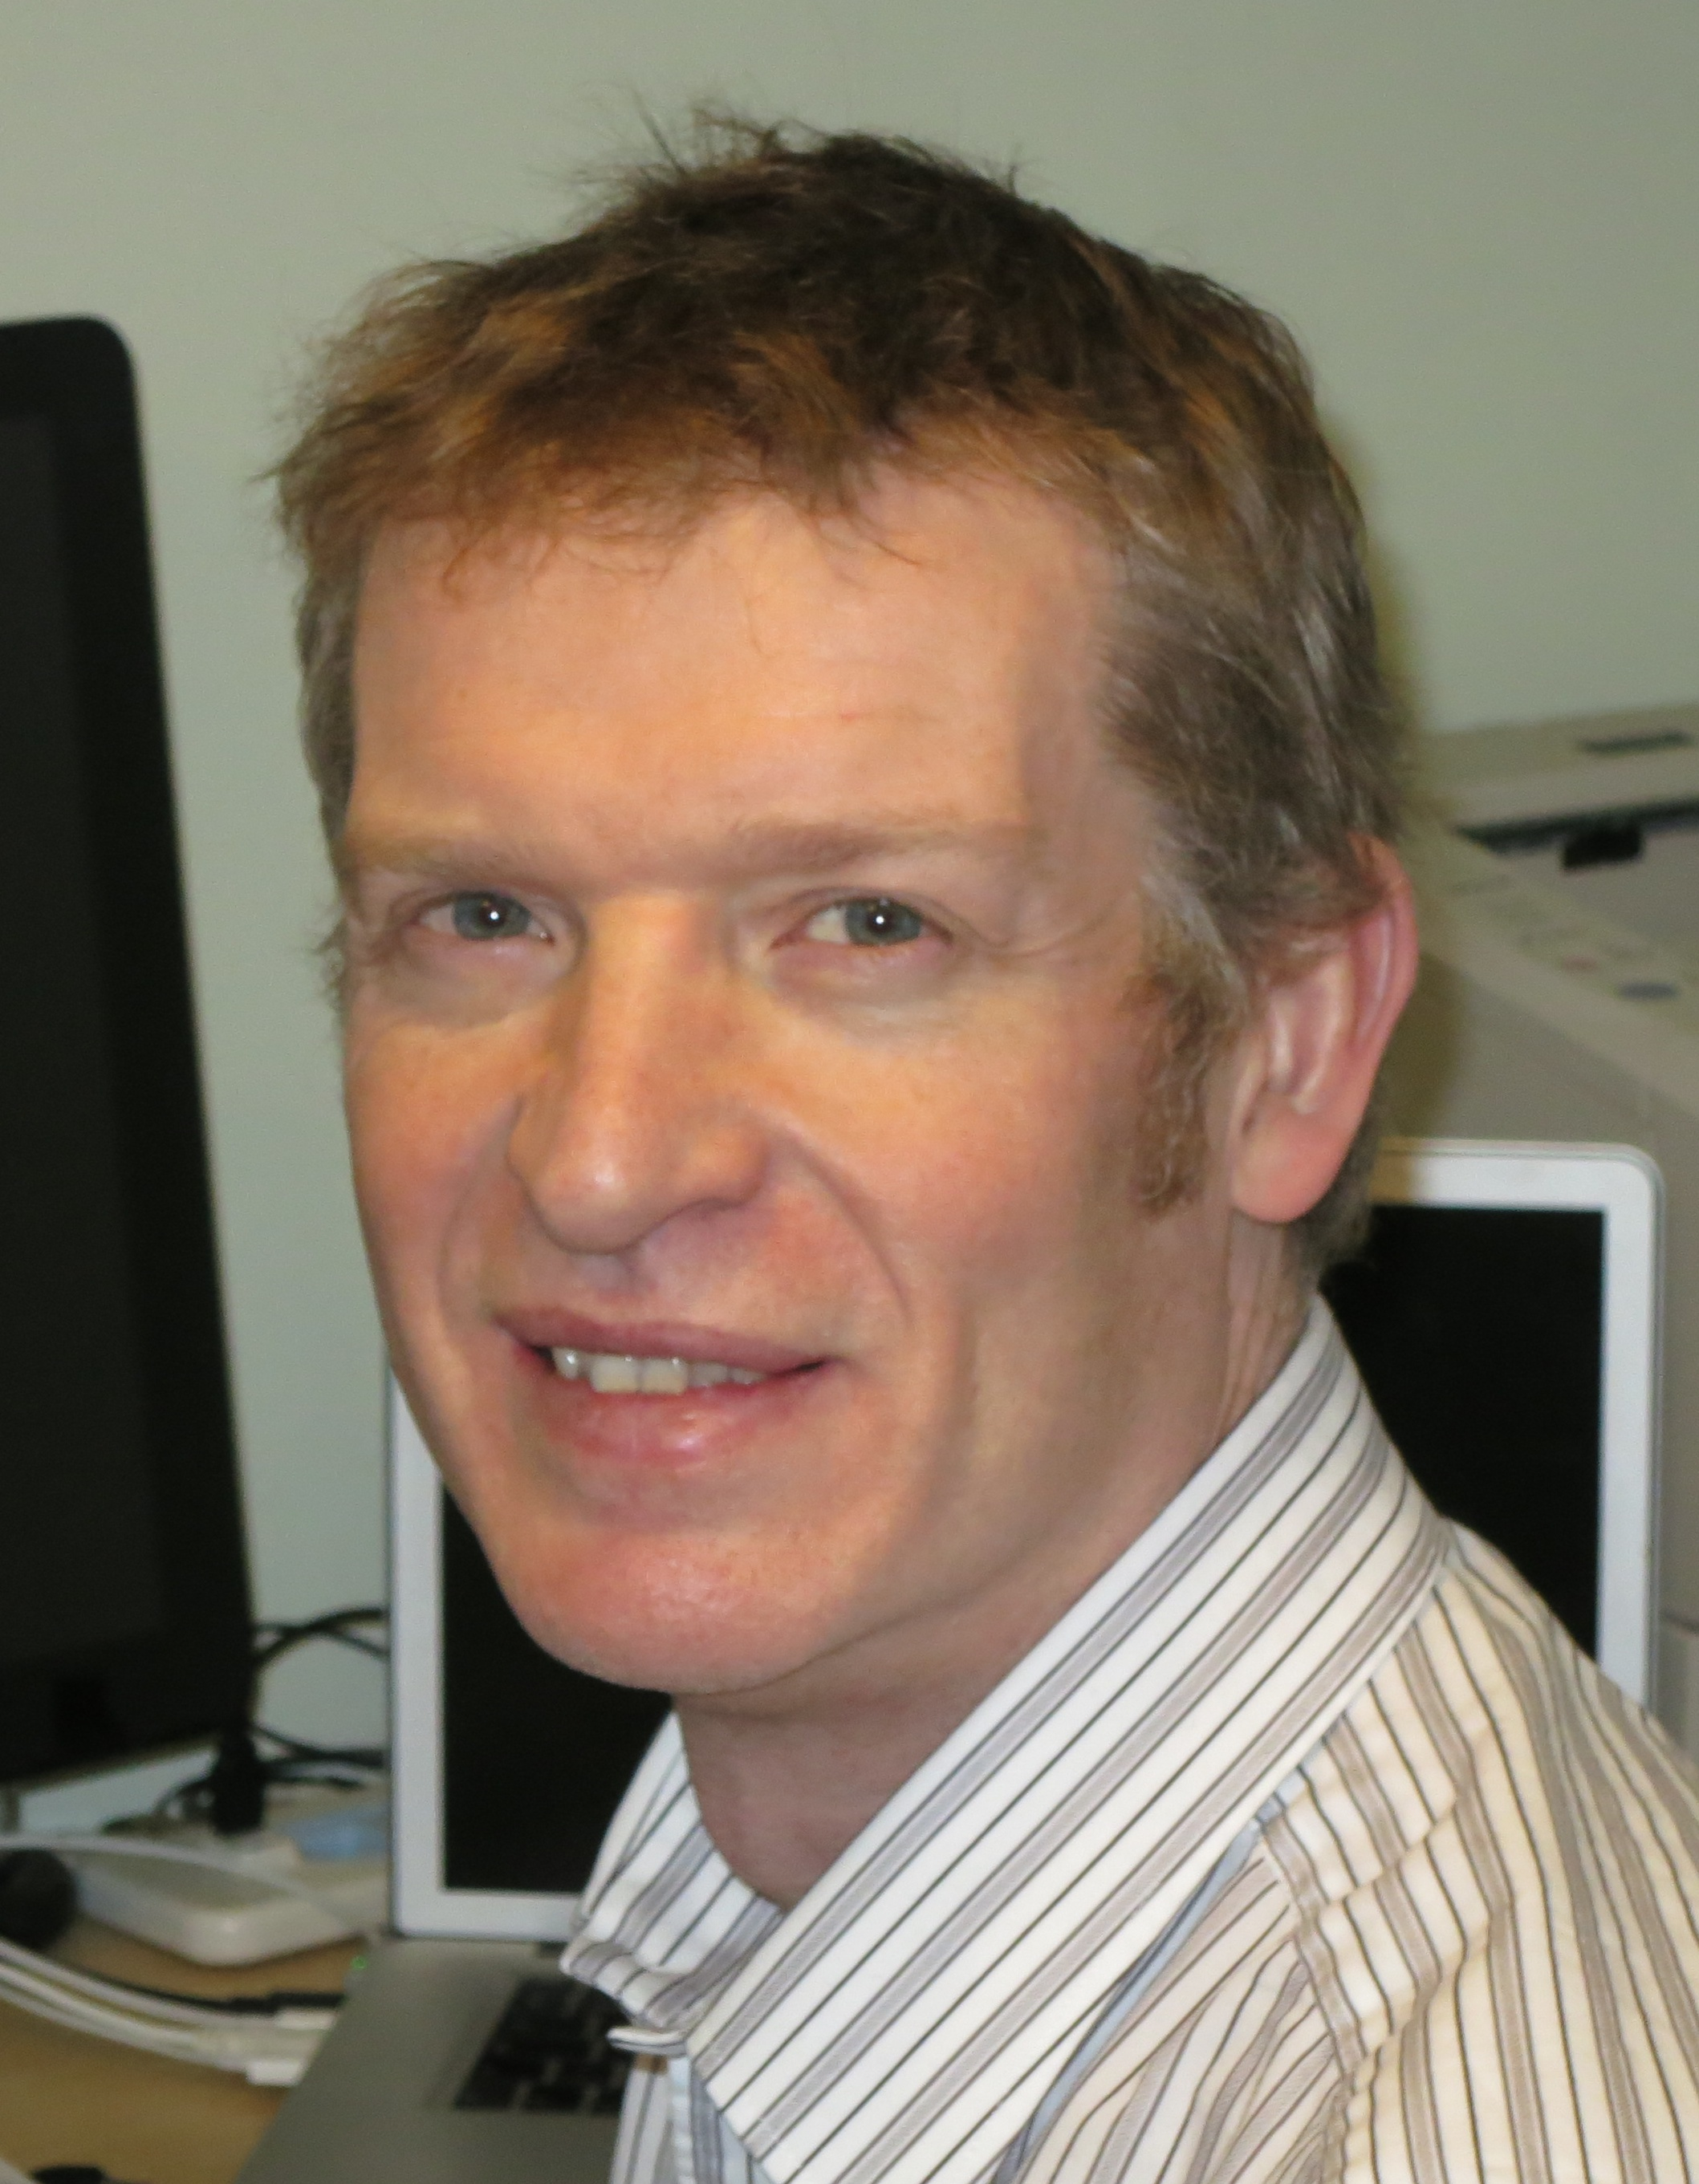 John Roberts - Nuclear Fellow in the School of Physics and Astronomy, The University of Manchester.